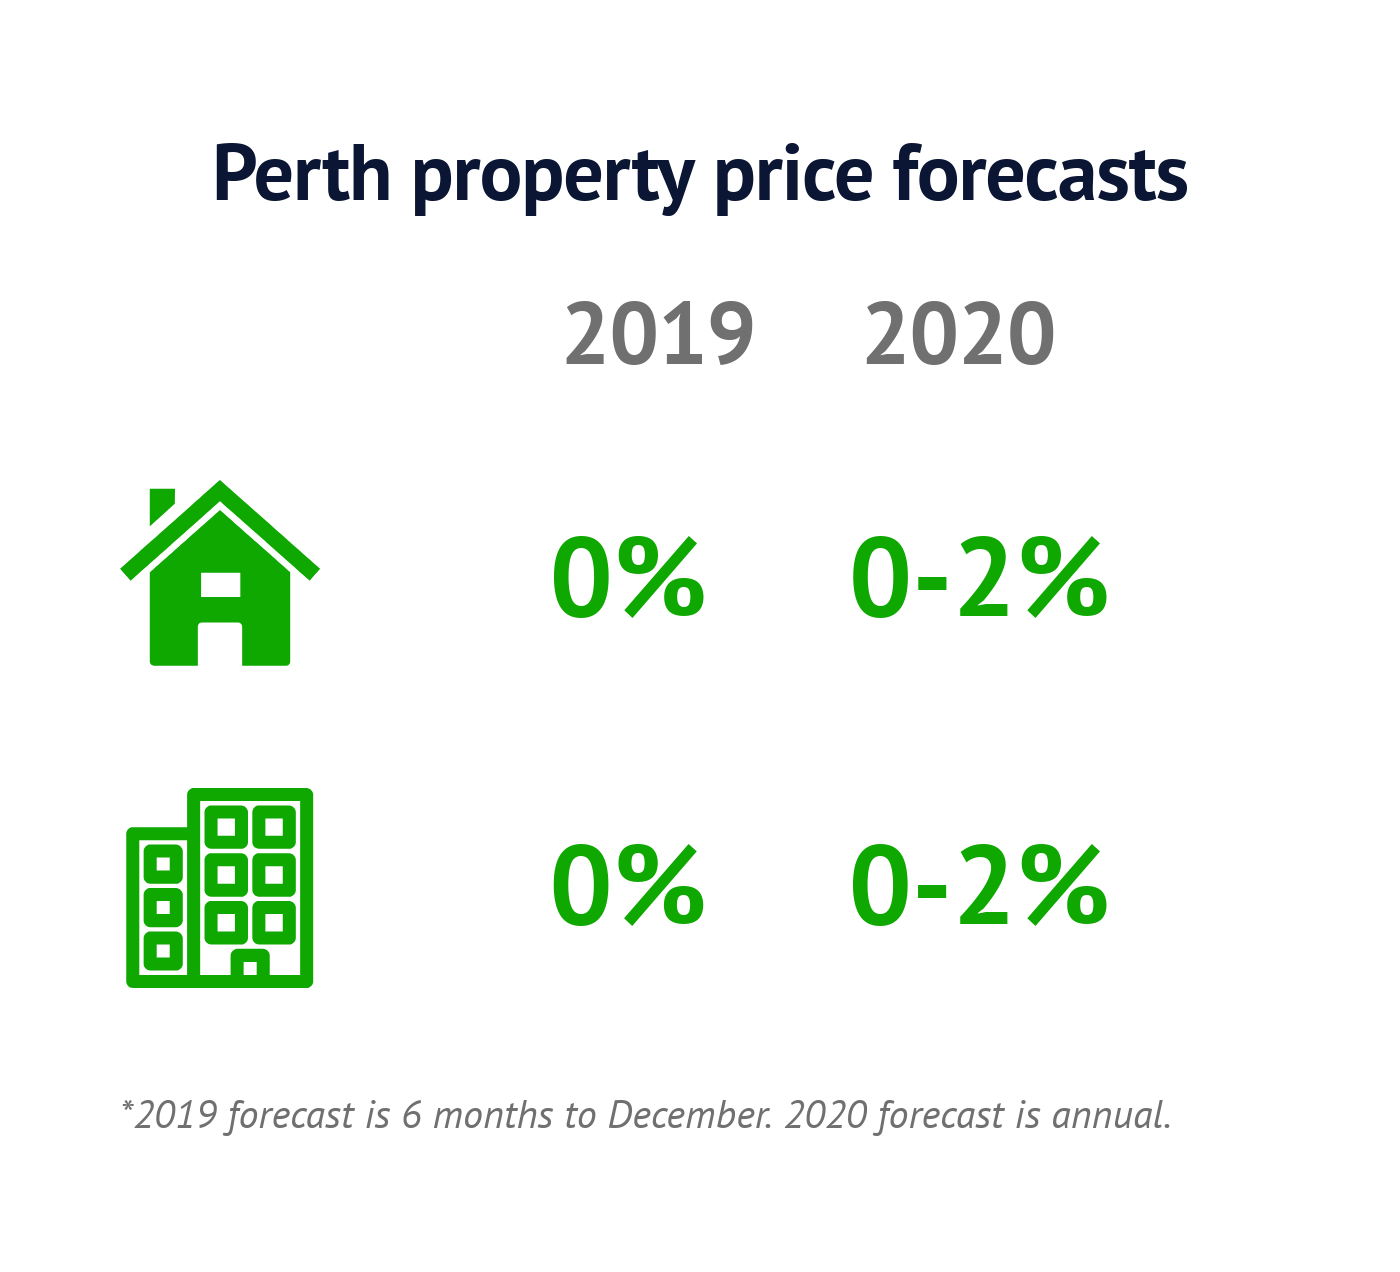 Perth property prices could tick upwards in 2020: new forecast